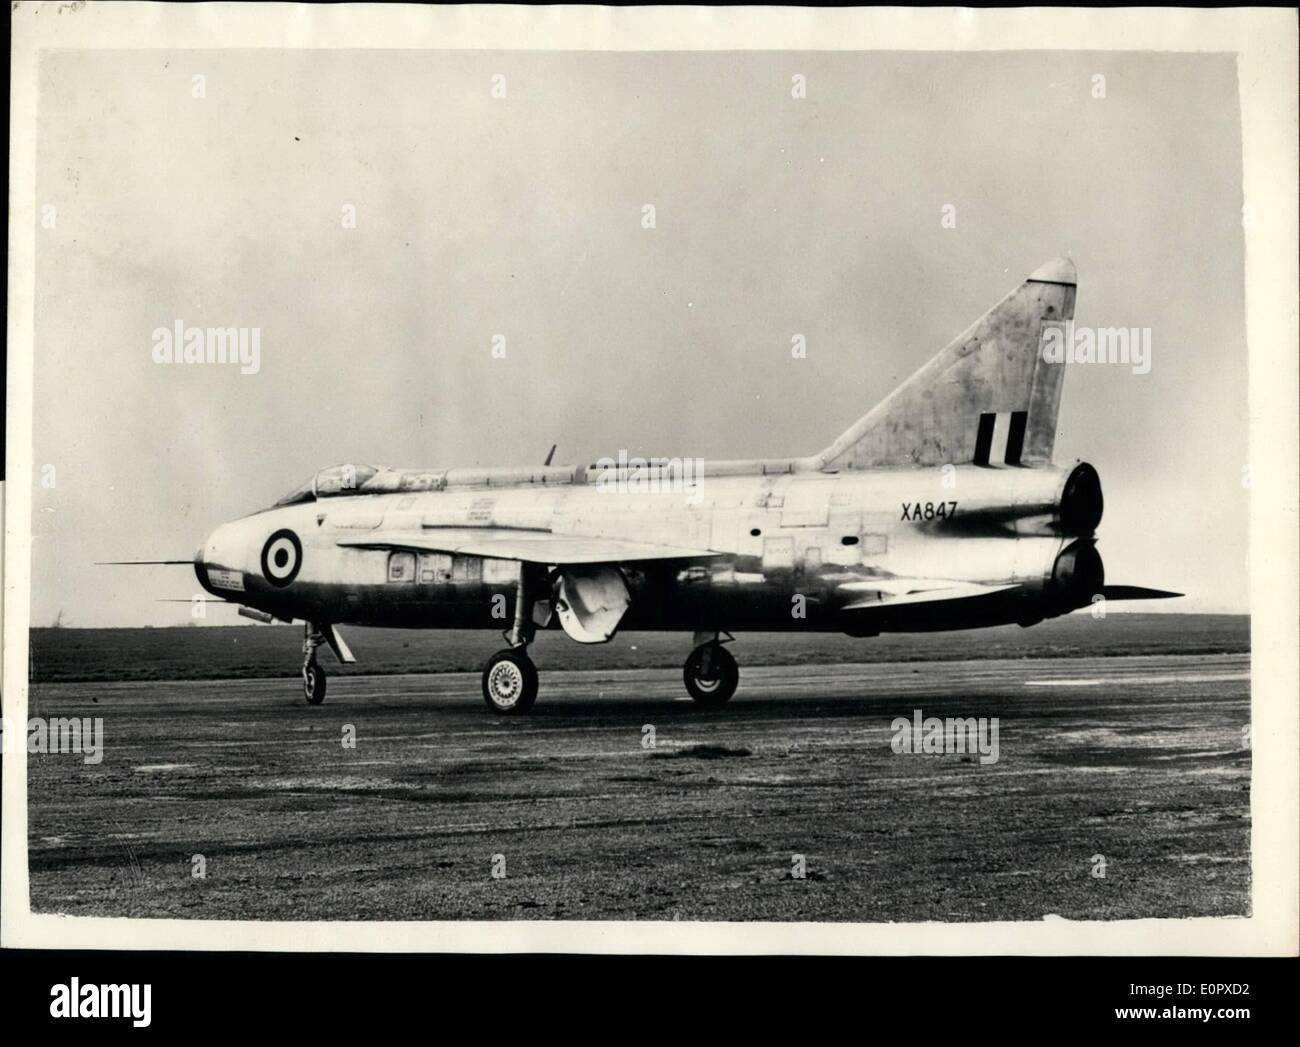 Apr. 04, 1957 - English Electric P.1B. has Maiden Flight. The first English Electric P.1B fully supersonic twin jet fighter made its maiden flight today at Warton aerodome, Lancashire. Wing Commander R.P. Beamont.chief test pilot of English Electric , was at the controls. A production order for the P. 1B has been placed by the ministry of supply , and it will, in due course, go into sevice with fighter command of the Royal Air Force as an all weather day and night fighter . Design work on the P.1B was done by a team led by Mr.F.W Page, Chief Engineer of the English Electric Aircraft Division - Stock Image